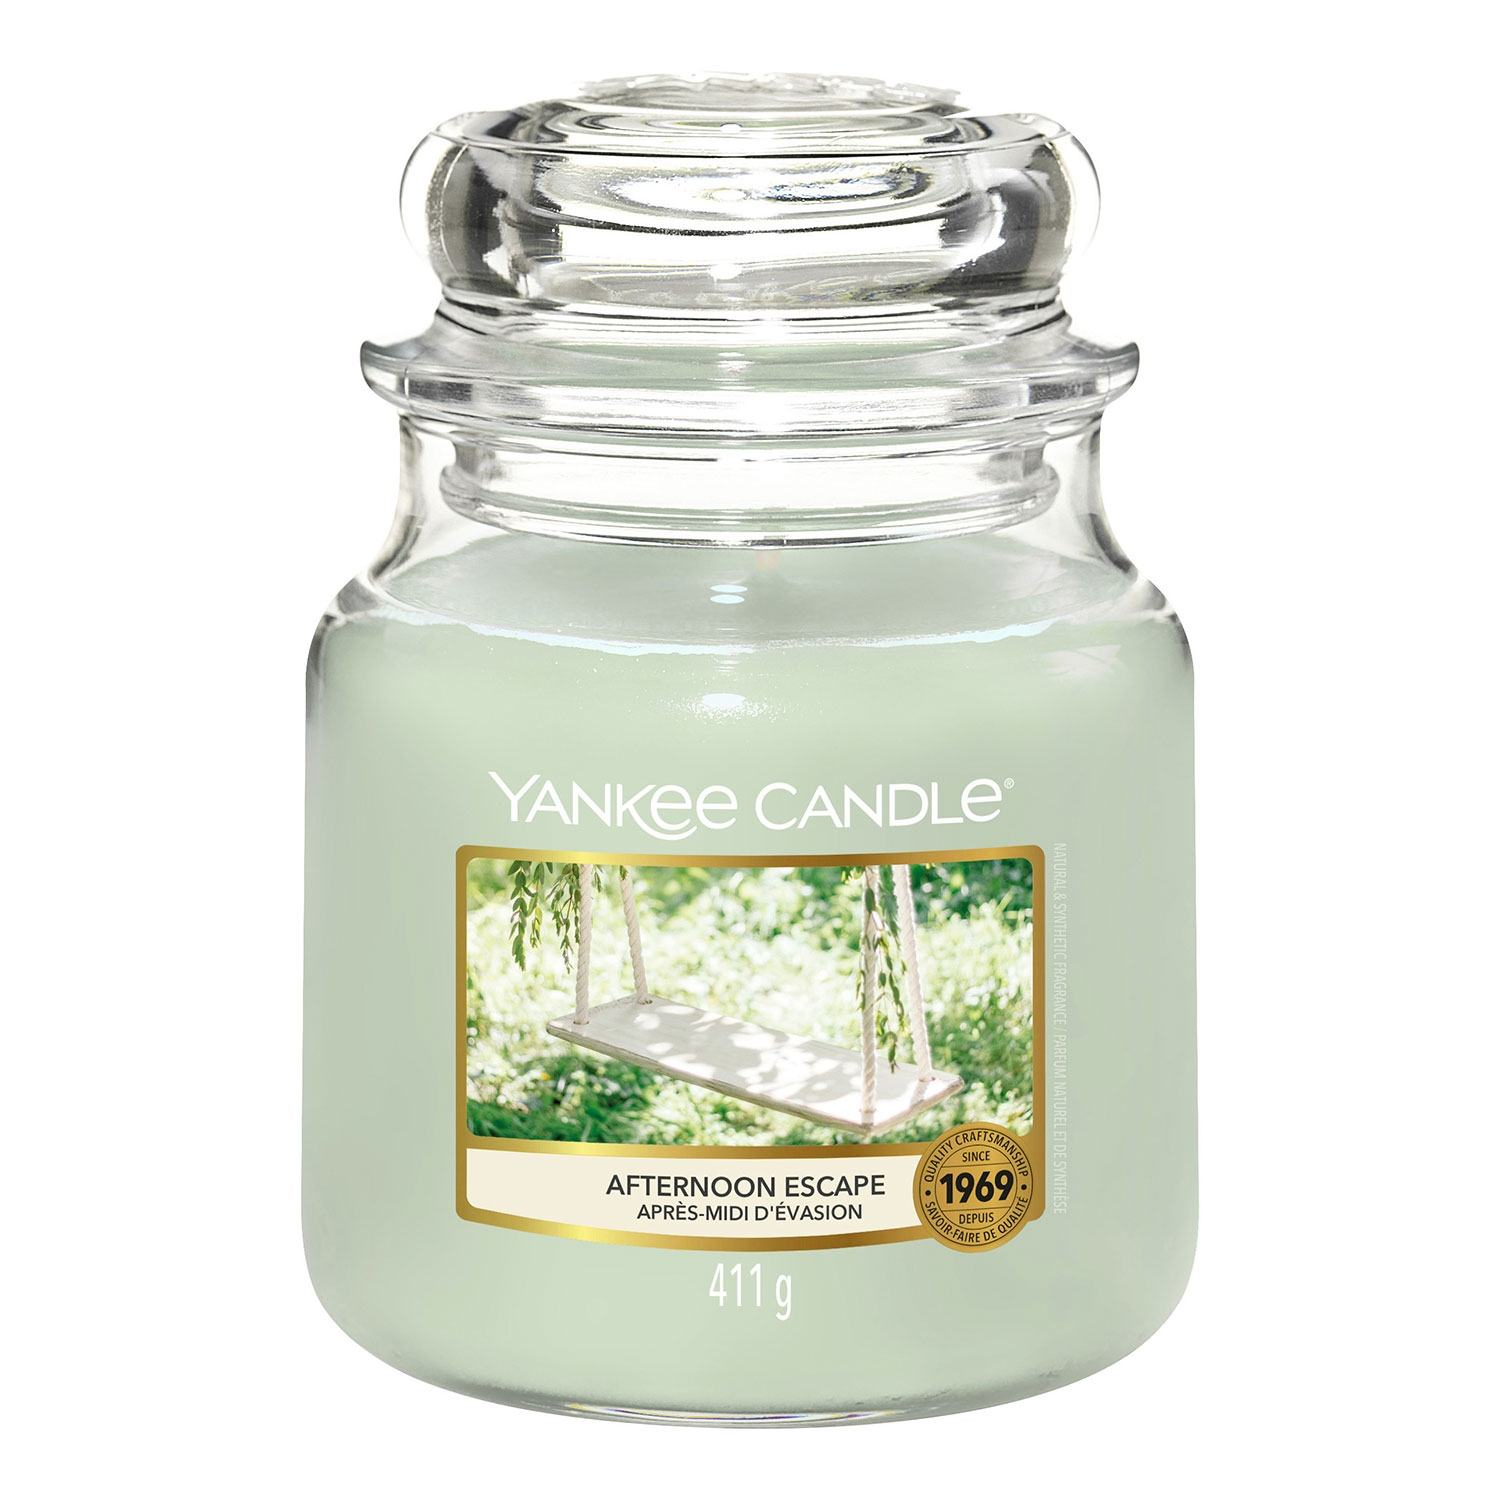 Yankee Candle Afternoon Escape Medium Jar Candle